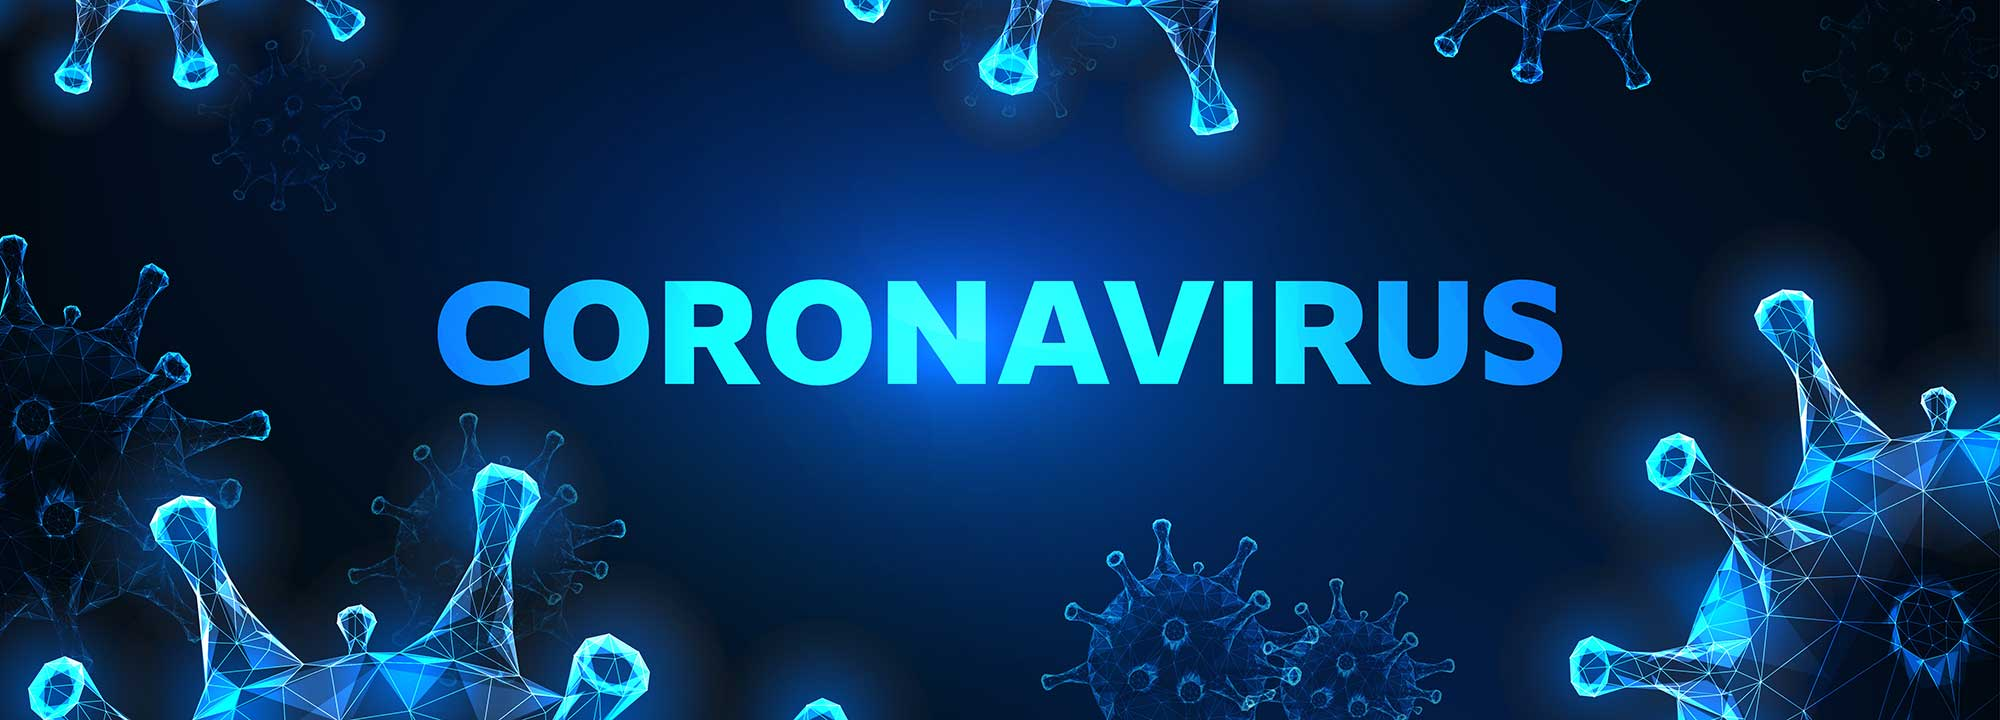 Futuristic coronavirus cells abstract background with glowing low polygonal virus cells and text on dark blue background.